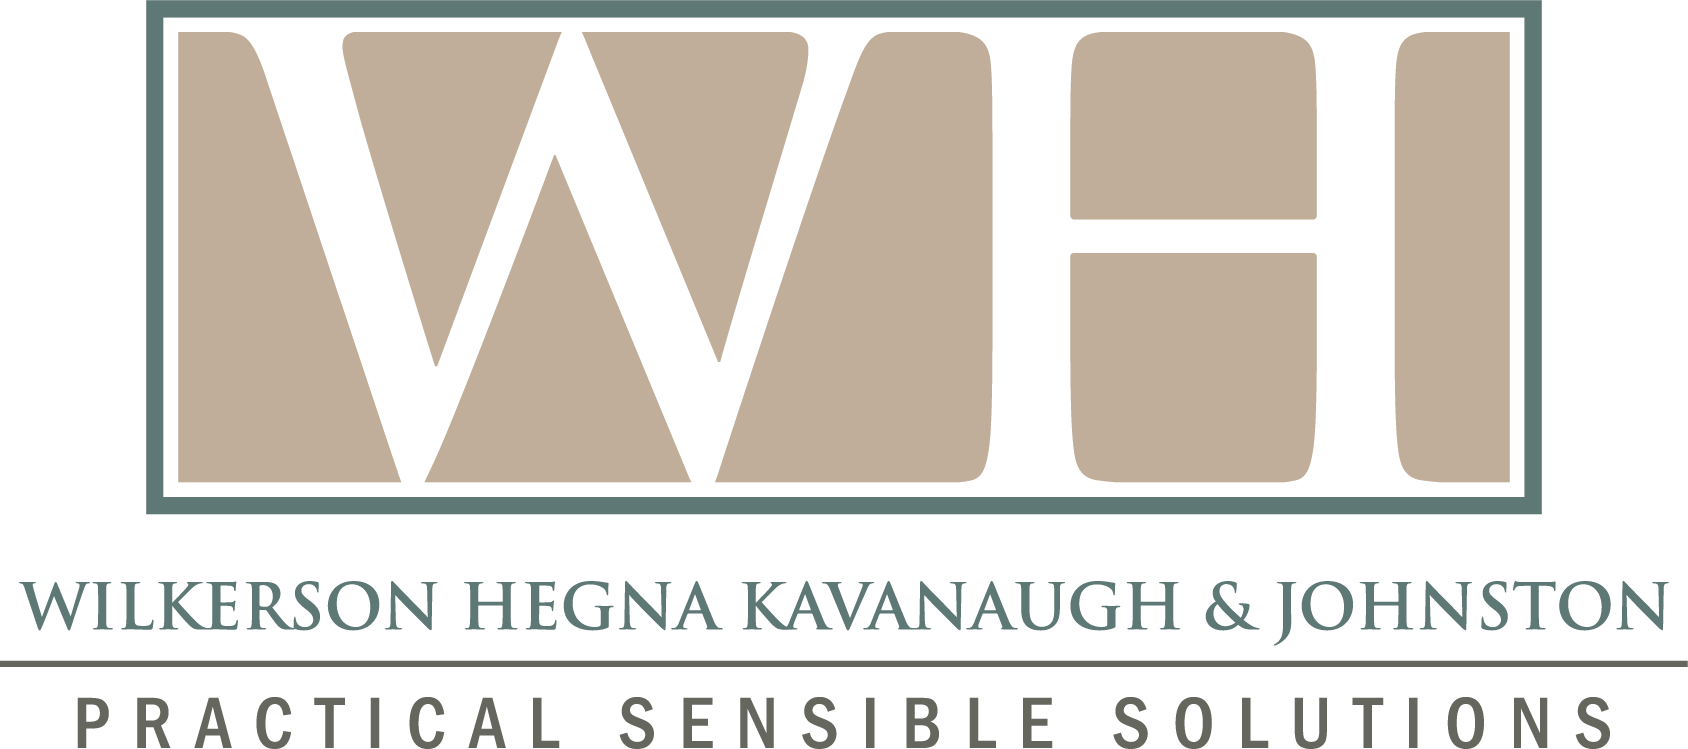 Wilkerson Hegna Kavanaugh & Johnston